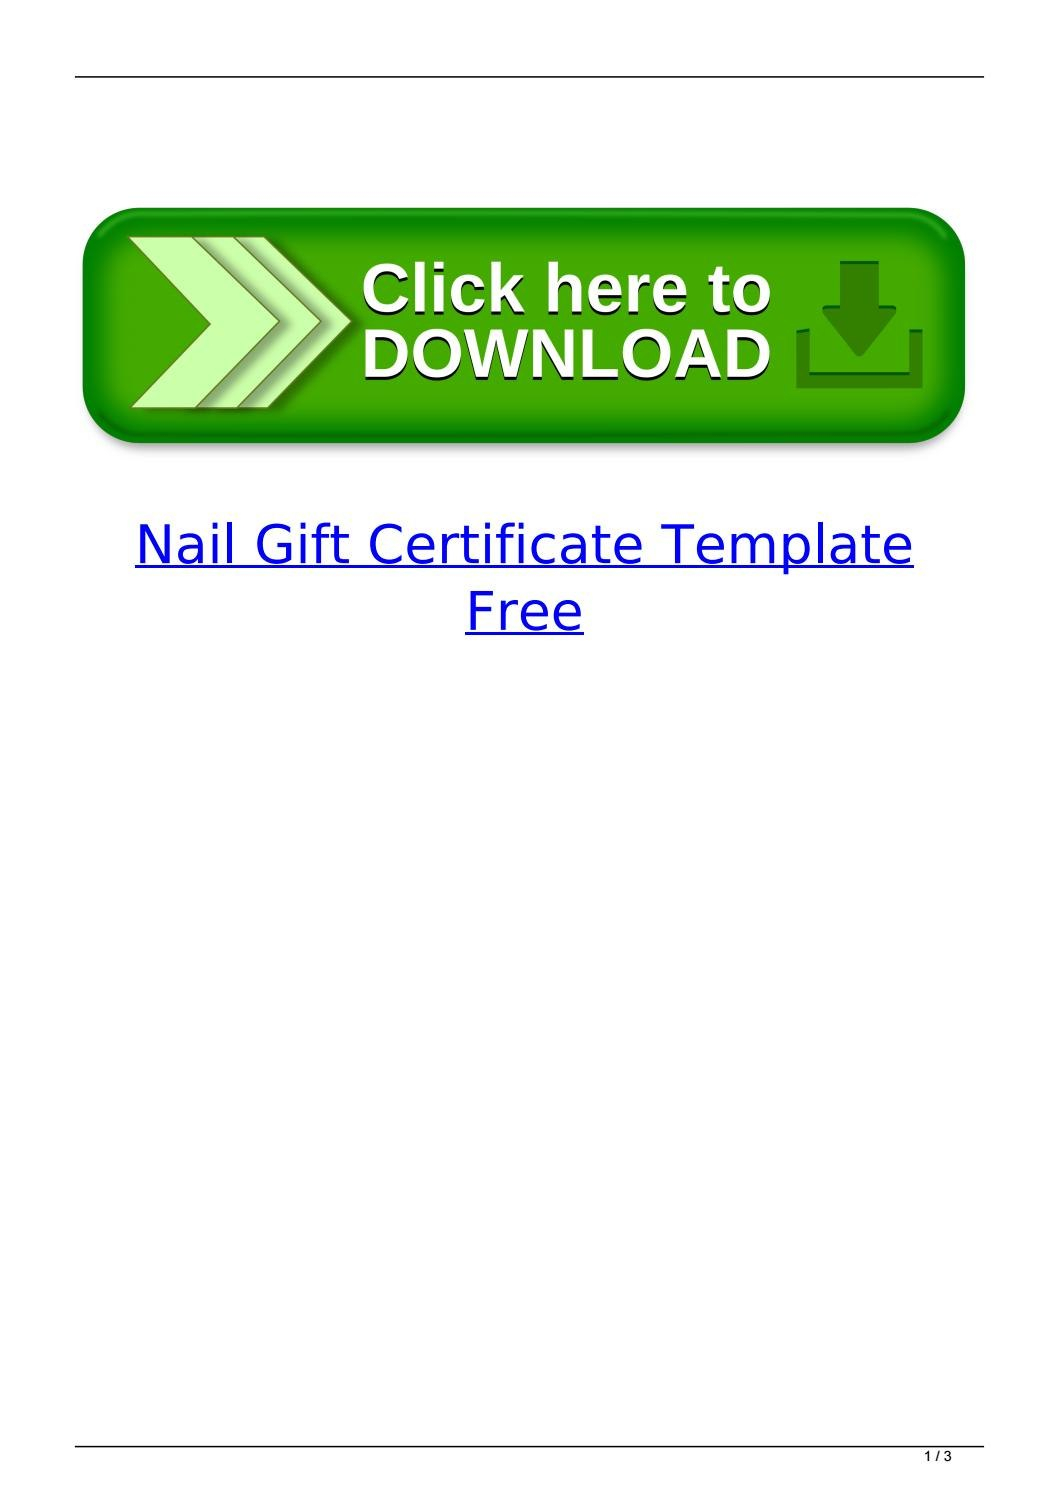 Nail Gift Certificate Template Freesubsconteasig  Issuu Regarding Nail Gift Certificate Template Free